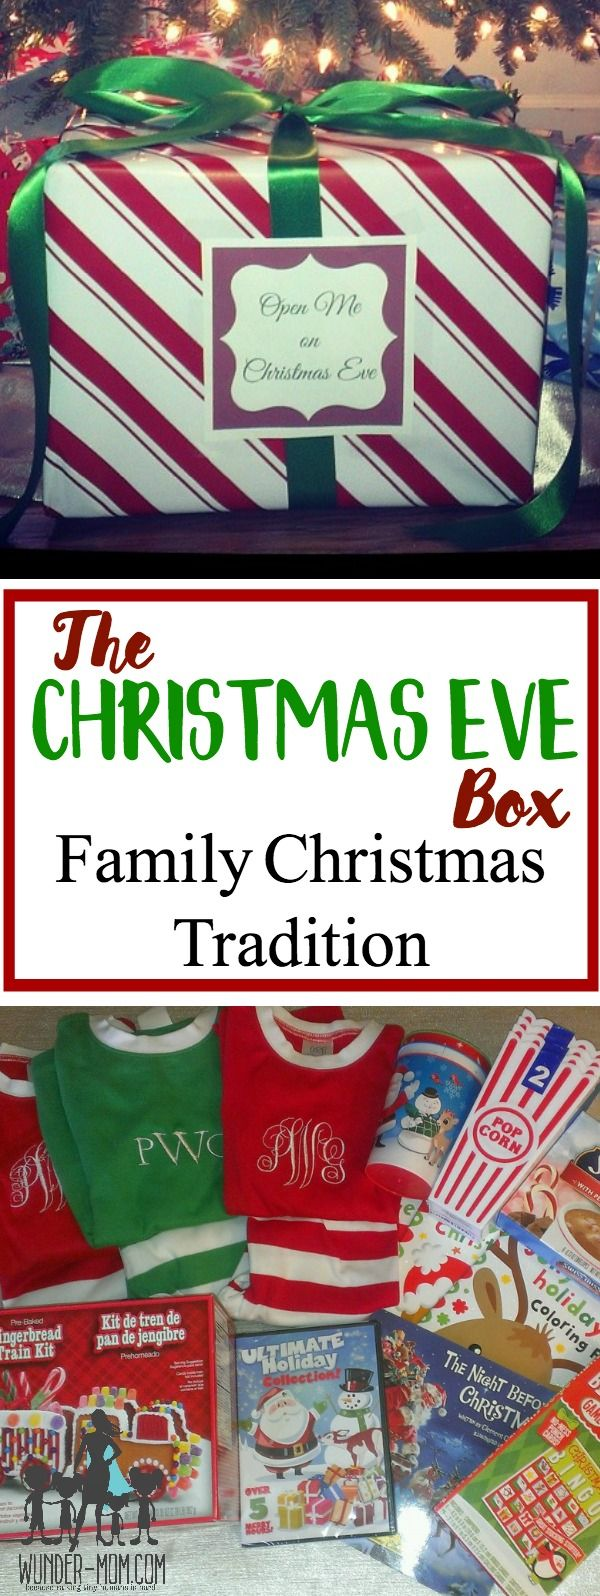 Christmas Eve box ideas. Create a fun Christmas Eve box for the kids to open on Christmas eve. Family Traditions.